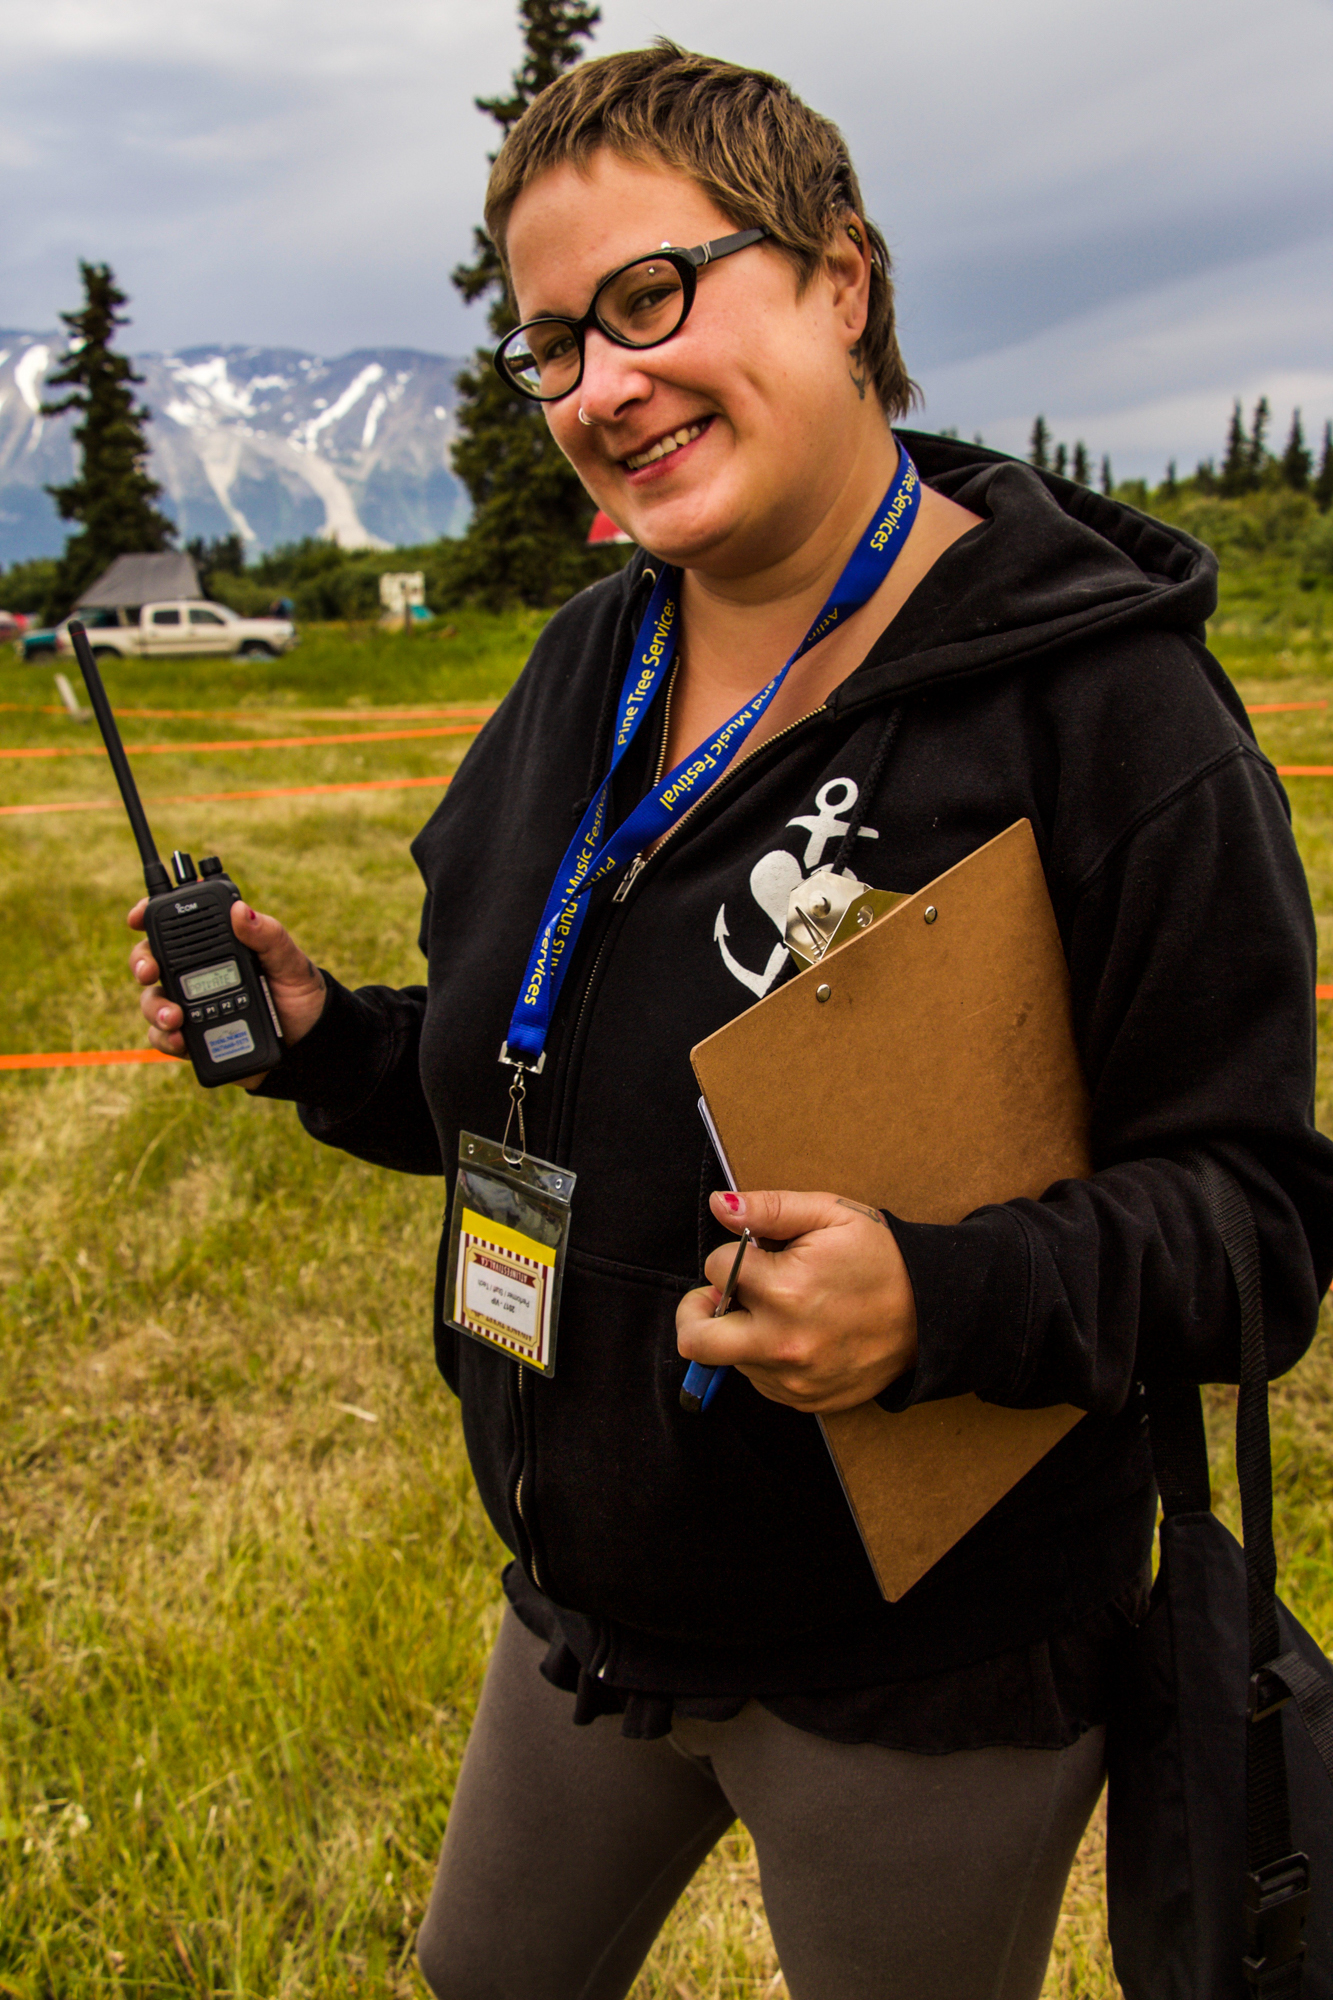 Ciara Stick is the vendors coordinator for the Atlin Arts and Music Festival, ensuring the booths and food trucks are where they need to be and set up at the right time. Photo by Rachel Levy-McLaughlin